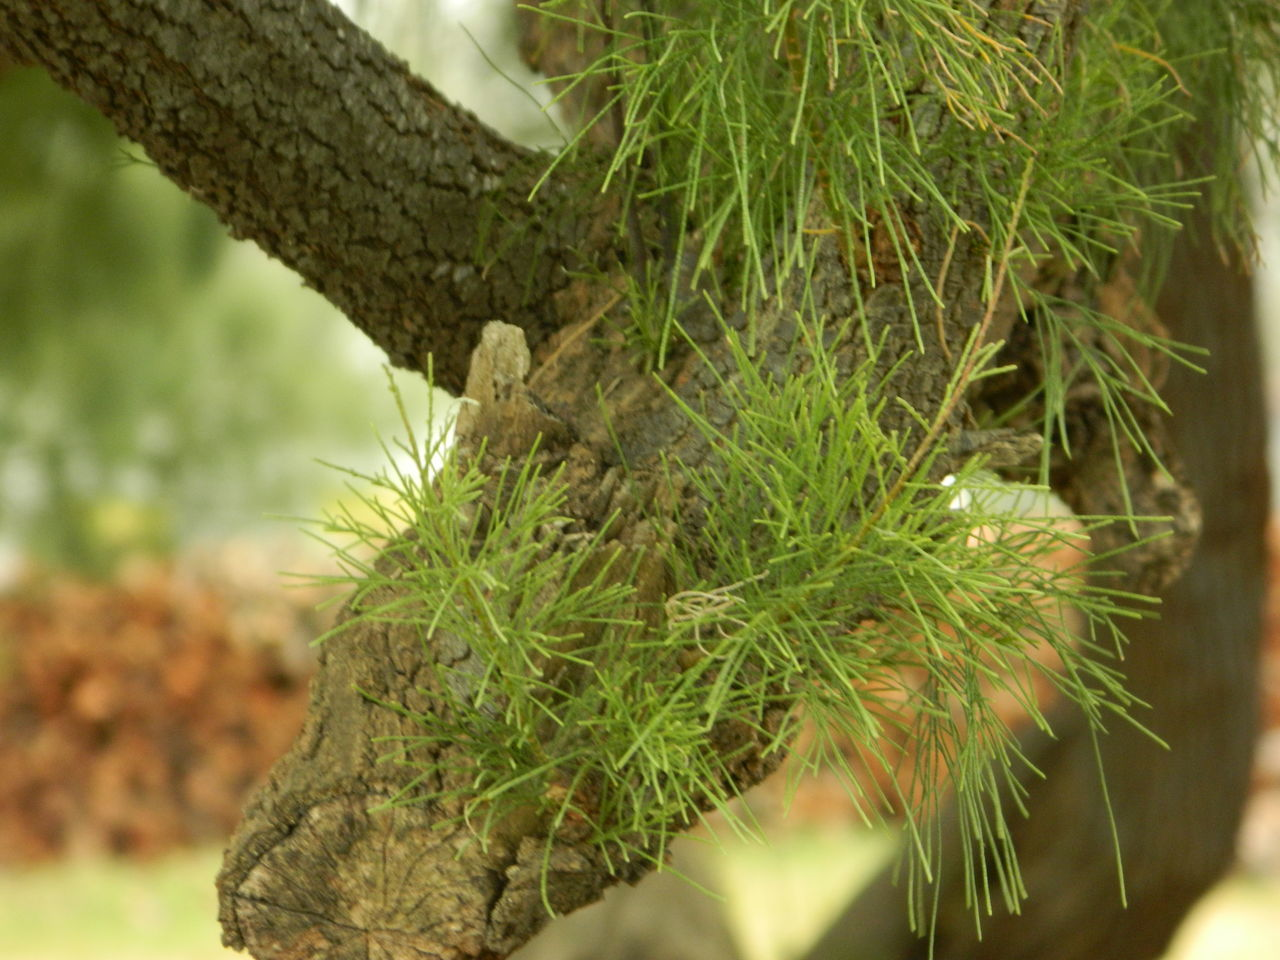 growth, nature, green color, focus on foreground, plant, close-up, no people, day, beauty in nature, outdoors, leaf, branch, tree